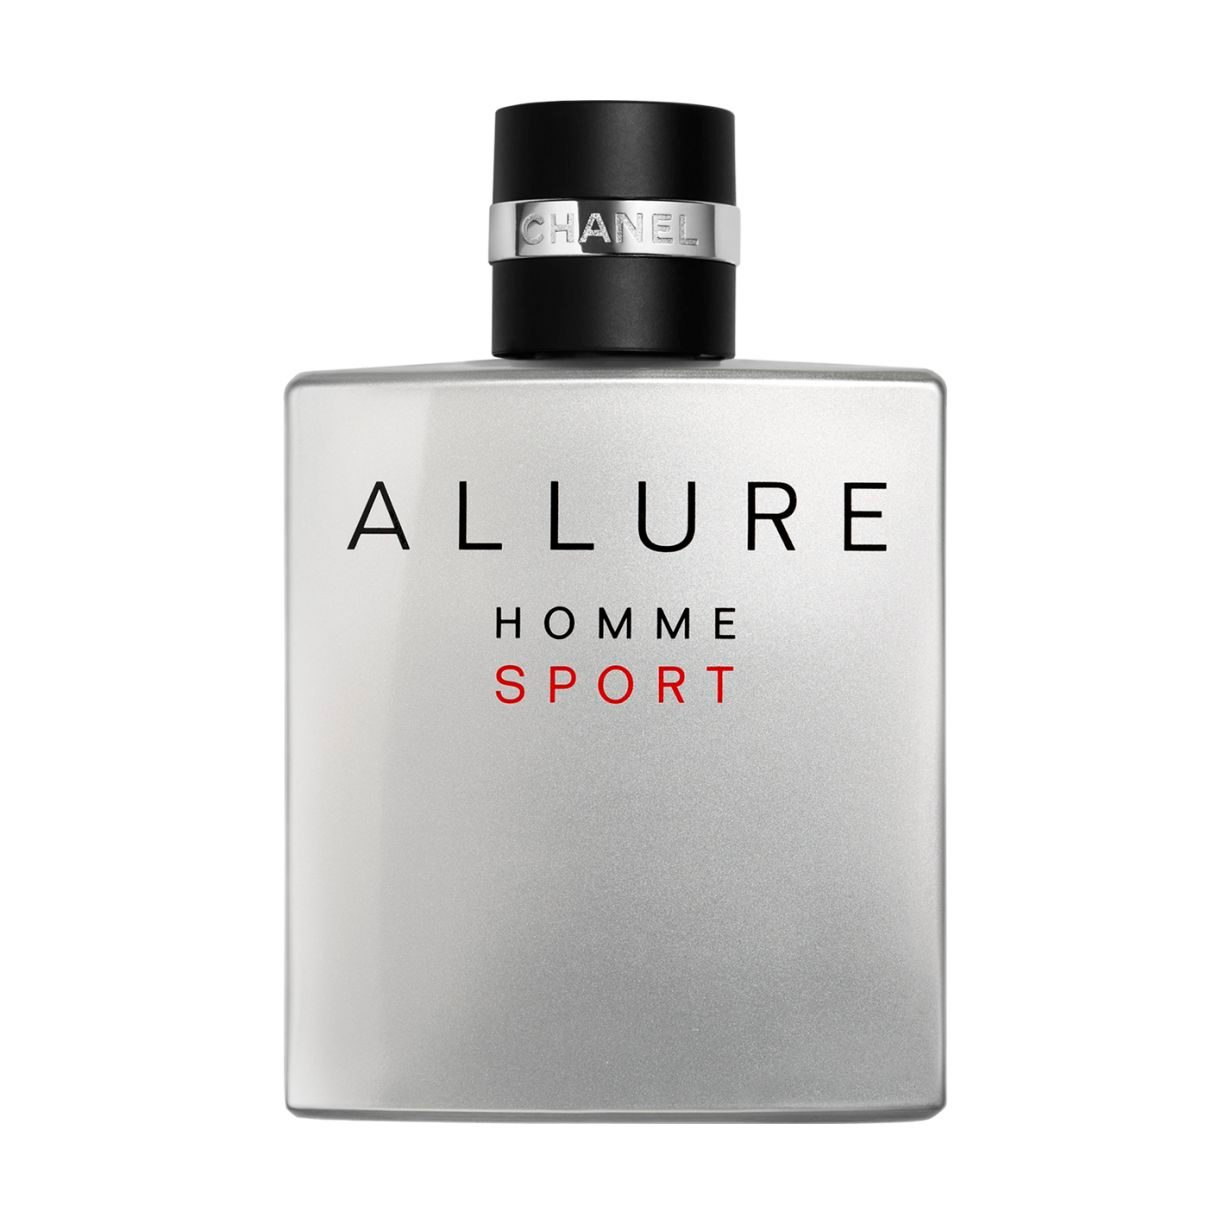 ALLURE HOMME SPORT EAU DE TOILETTE SPRAY 50ML